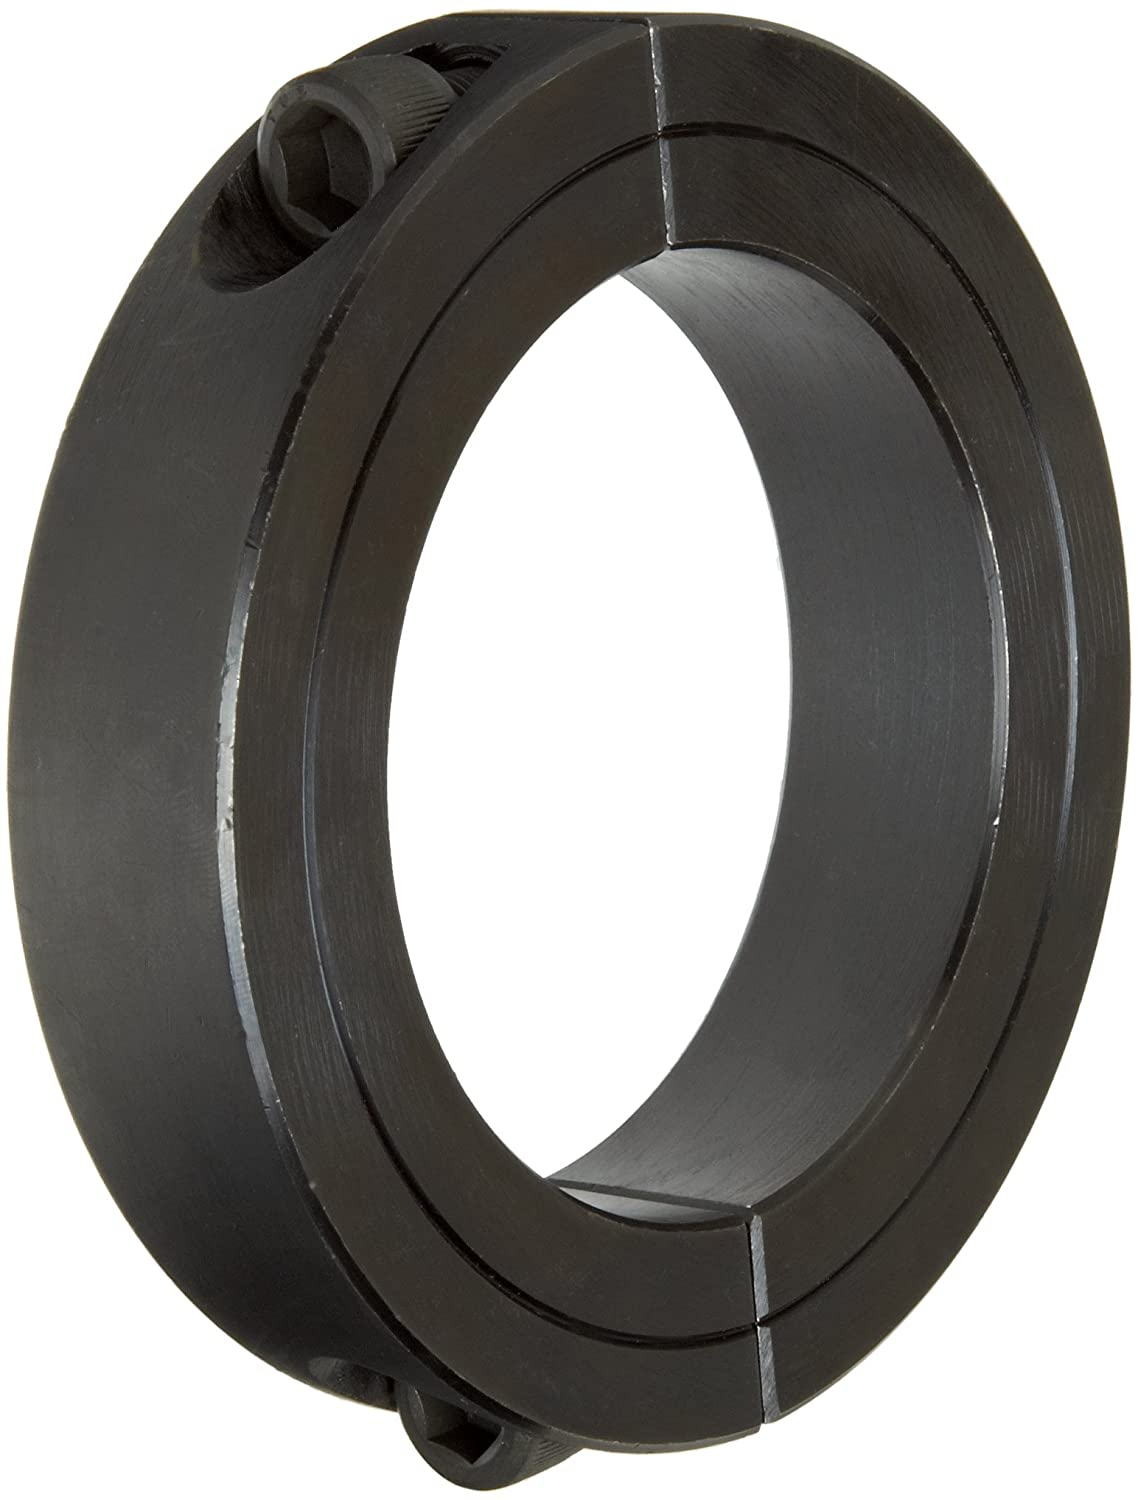 Climax Metal 2C-193 Steel Two-Piece Clamping Collar, Black Oxide Plating, 1-15/16